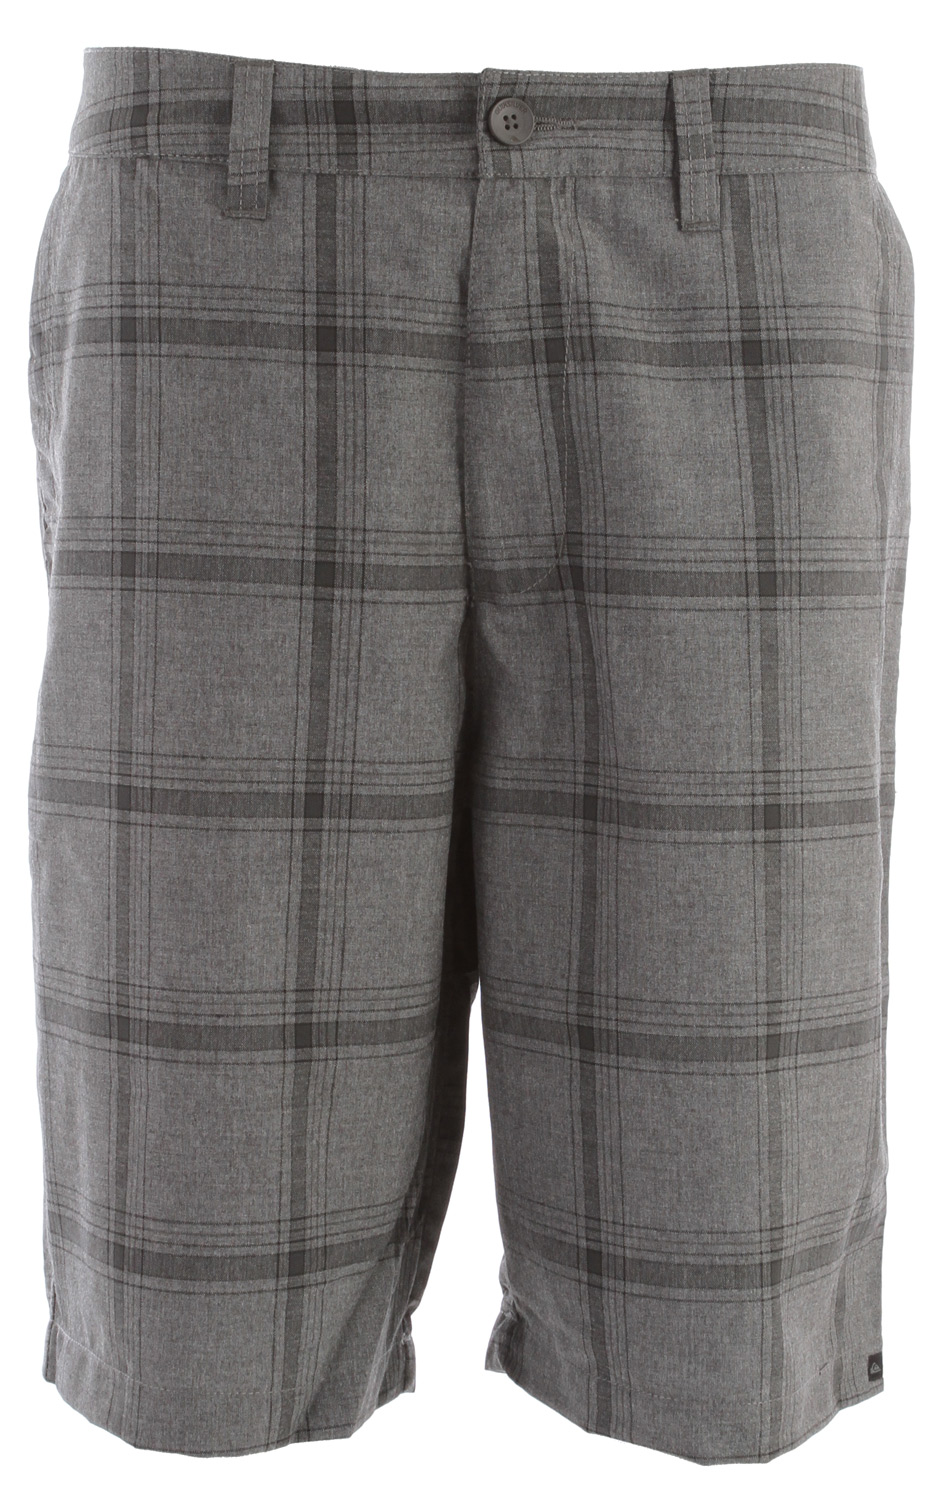 Surf We recommend wearing these regular fit shorts with a 9 iron and cleats.Key Features of the Quiksilver Regency 22In Shorts: 22 inch Outseam 65% Polyester 35% Viscose Garment wash with softener Imported - $35.95